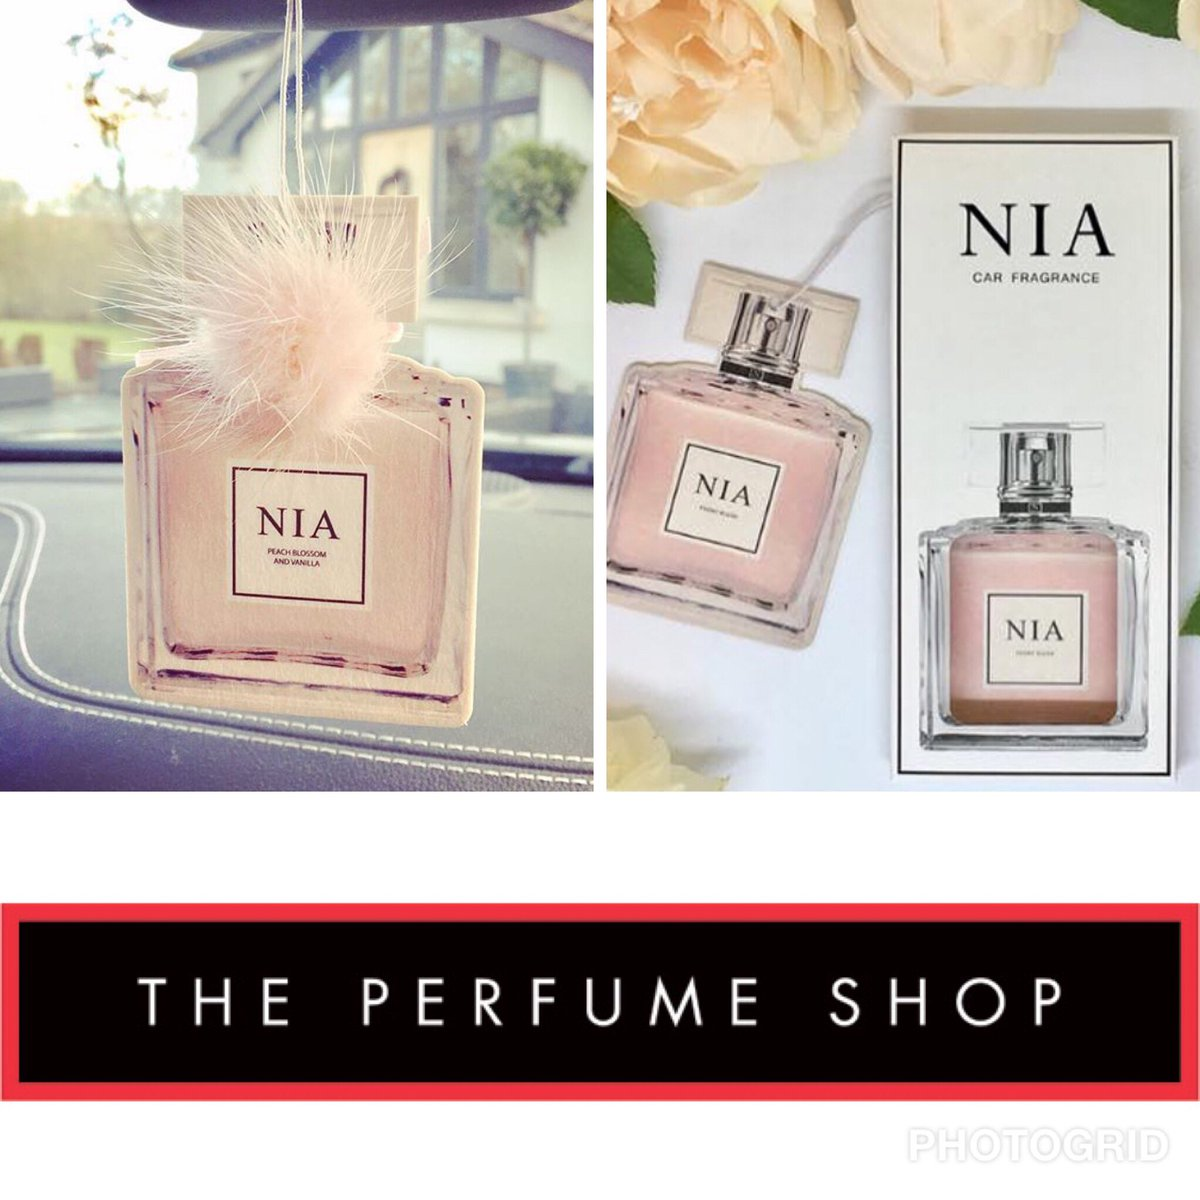 🤩🤩 EXCITING NEWS 🤩🤩 We have launched online with The Perfume Shop 😍🍾🥂💗 Shop here:- https://bit.ly/2XoKlAM  #niafragrances #perfumeshop #exciting #online #perfume #travelinstyle #carperfume #girly